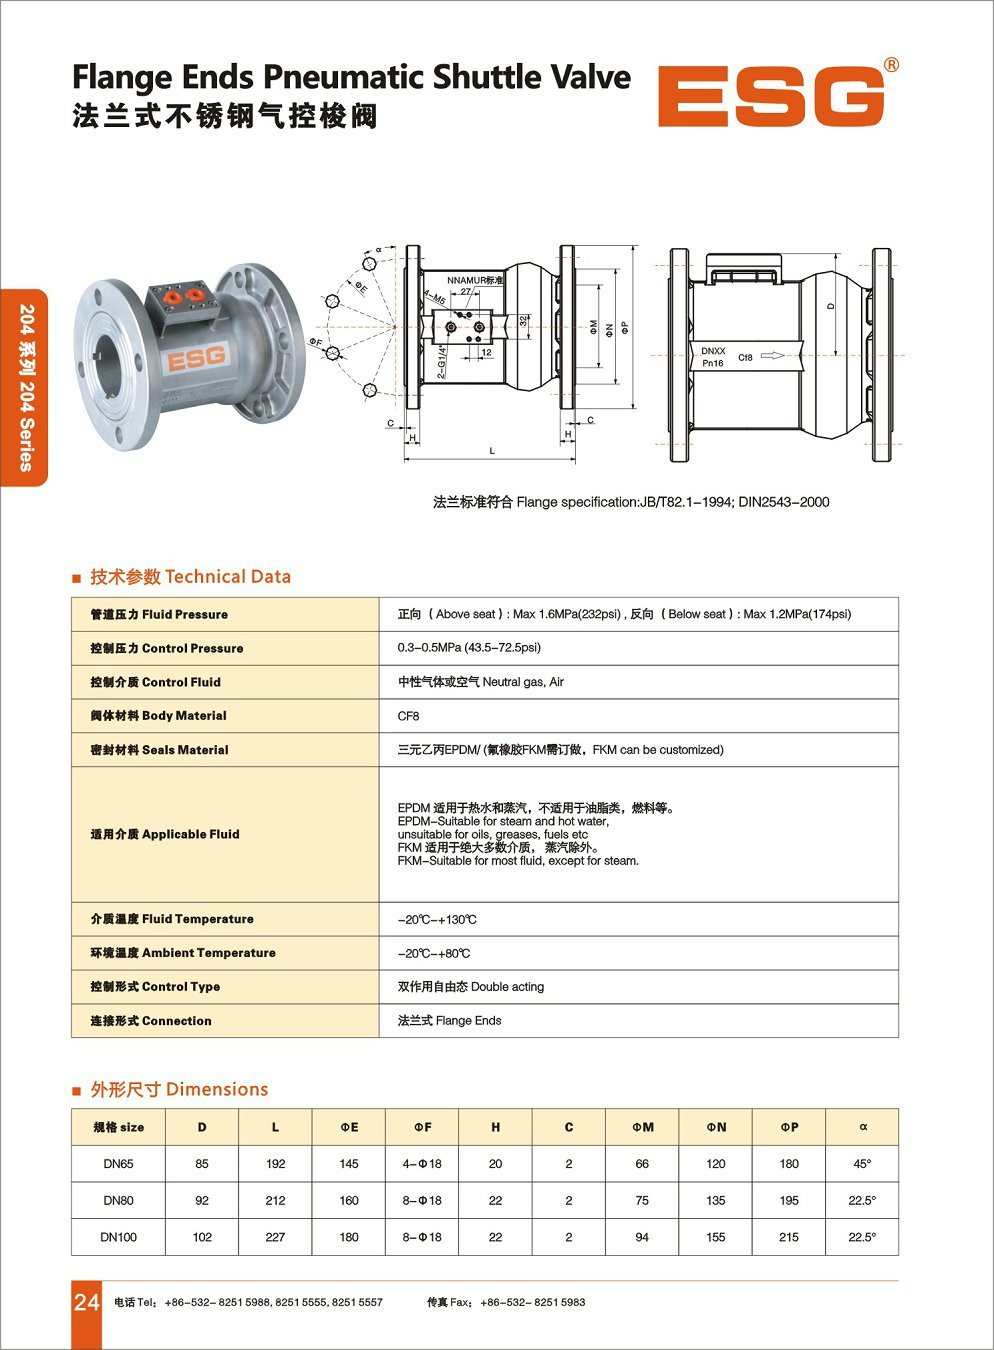 Flange Ends Double Acting Pneumatic Shuttle Valve